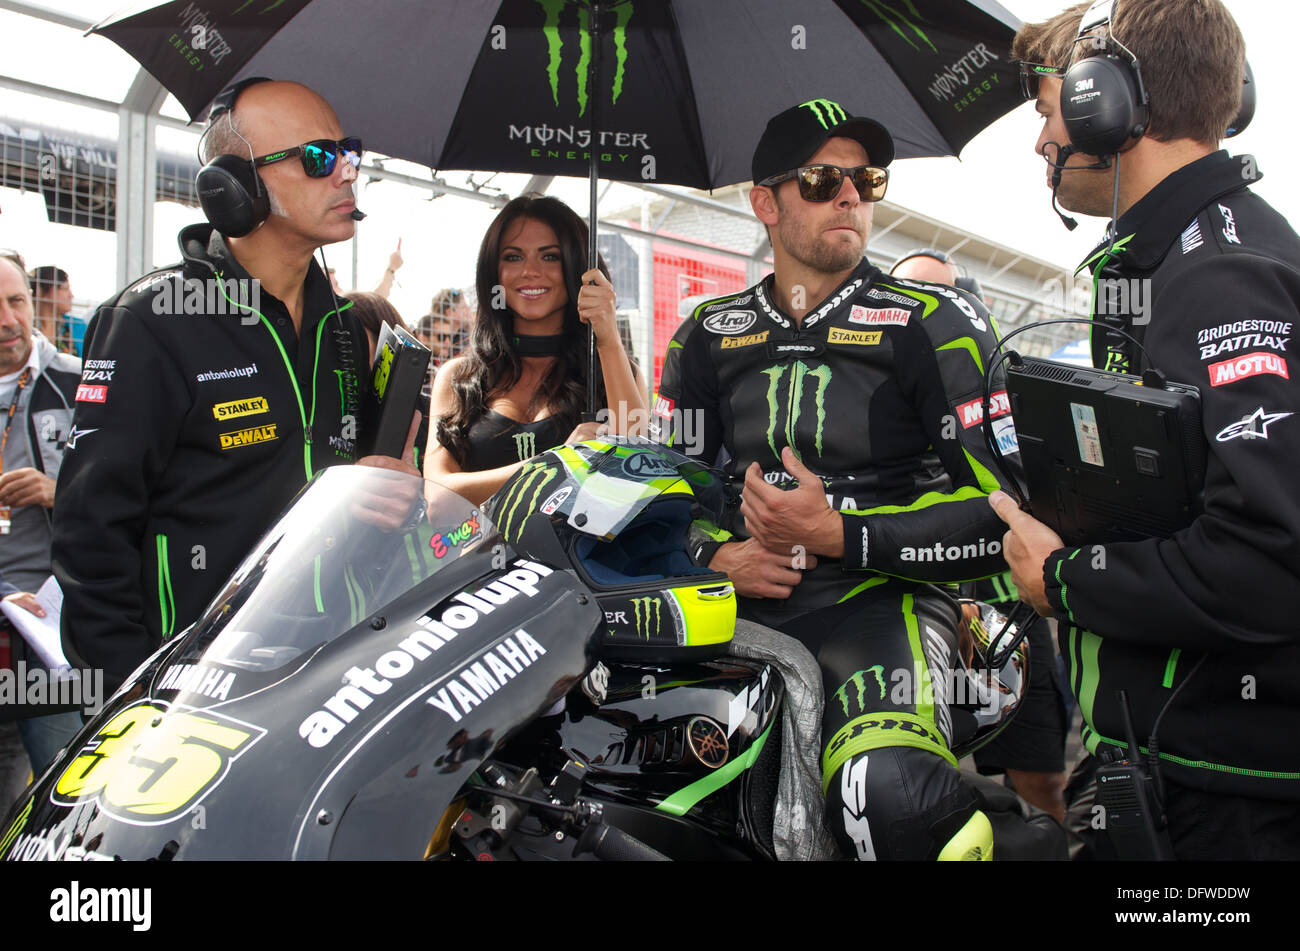 Monster Energy Grid Girl holds team umbrella for British MotoGP rider Cal Crutchlow during the British Grand Prix at Silverstone - Stock Image